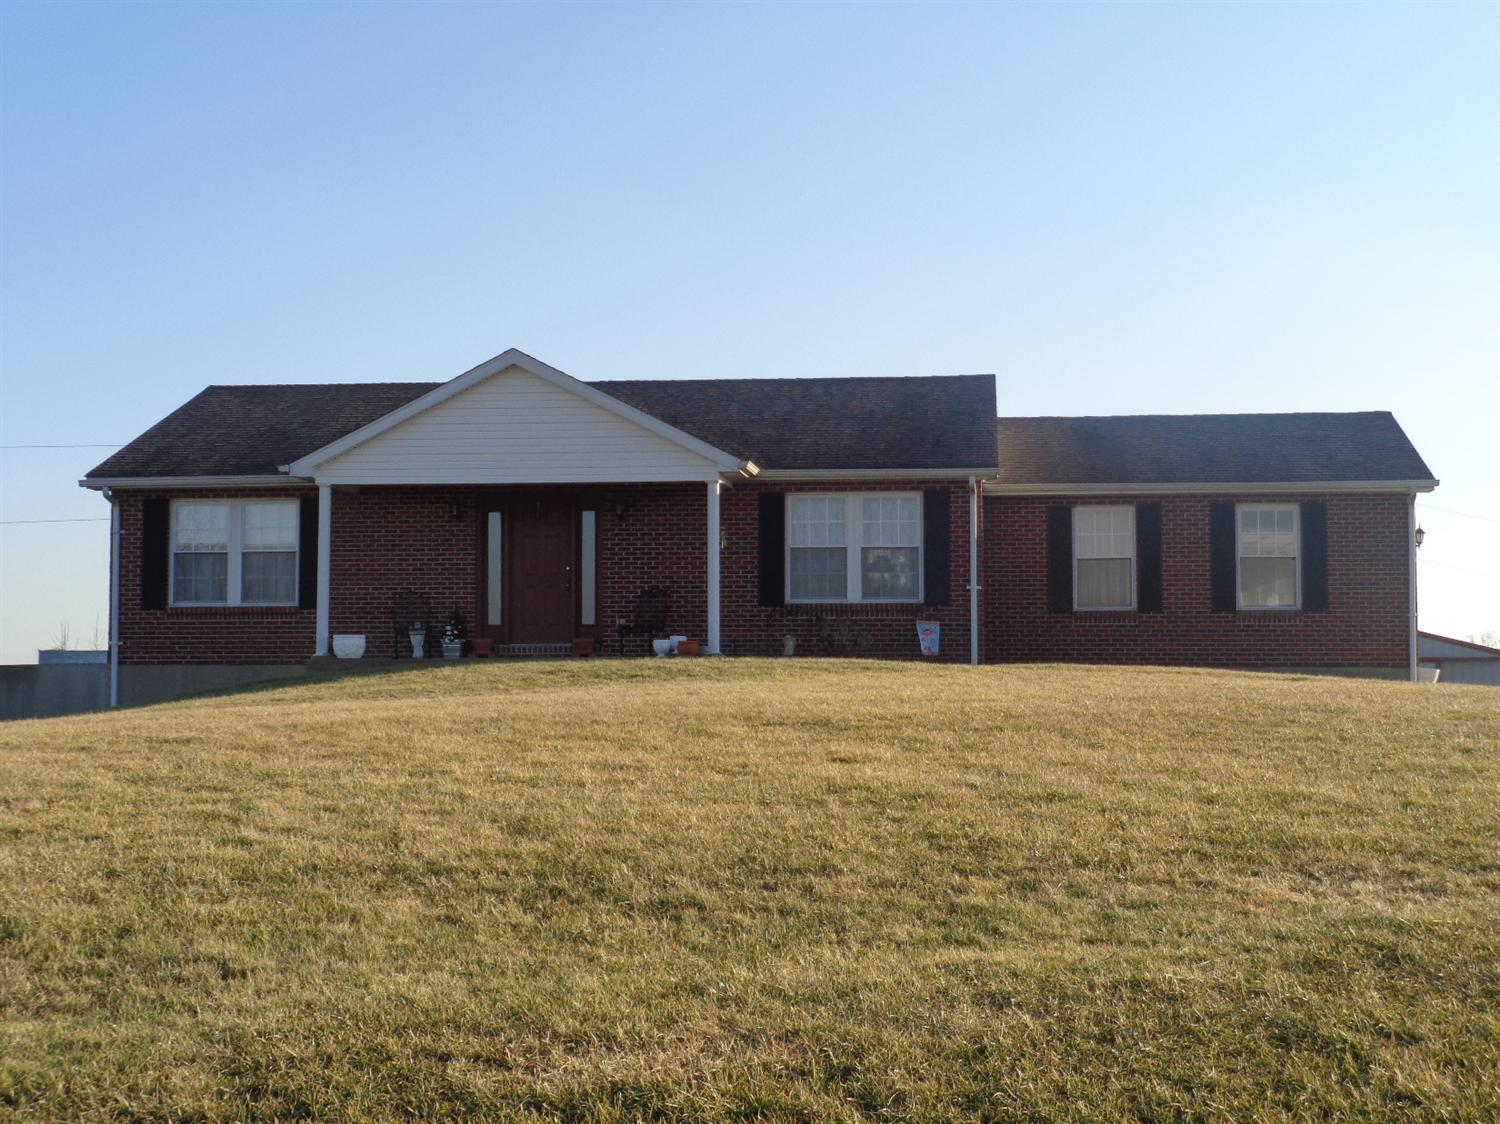 Photo 1 for 349 Taylor Jones Rd Falmouth, KY 41040